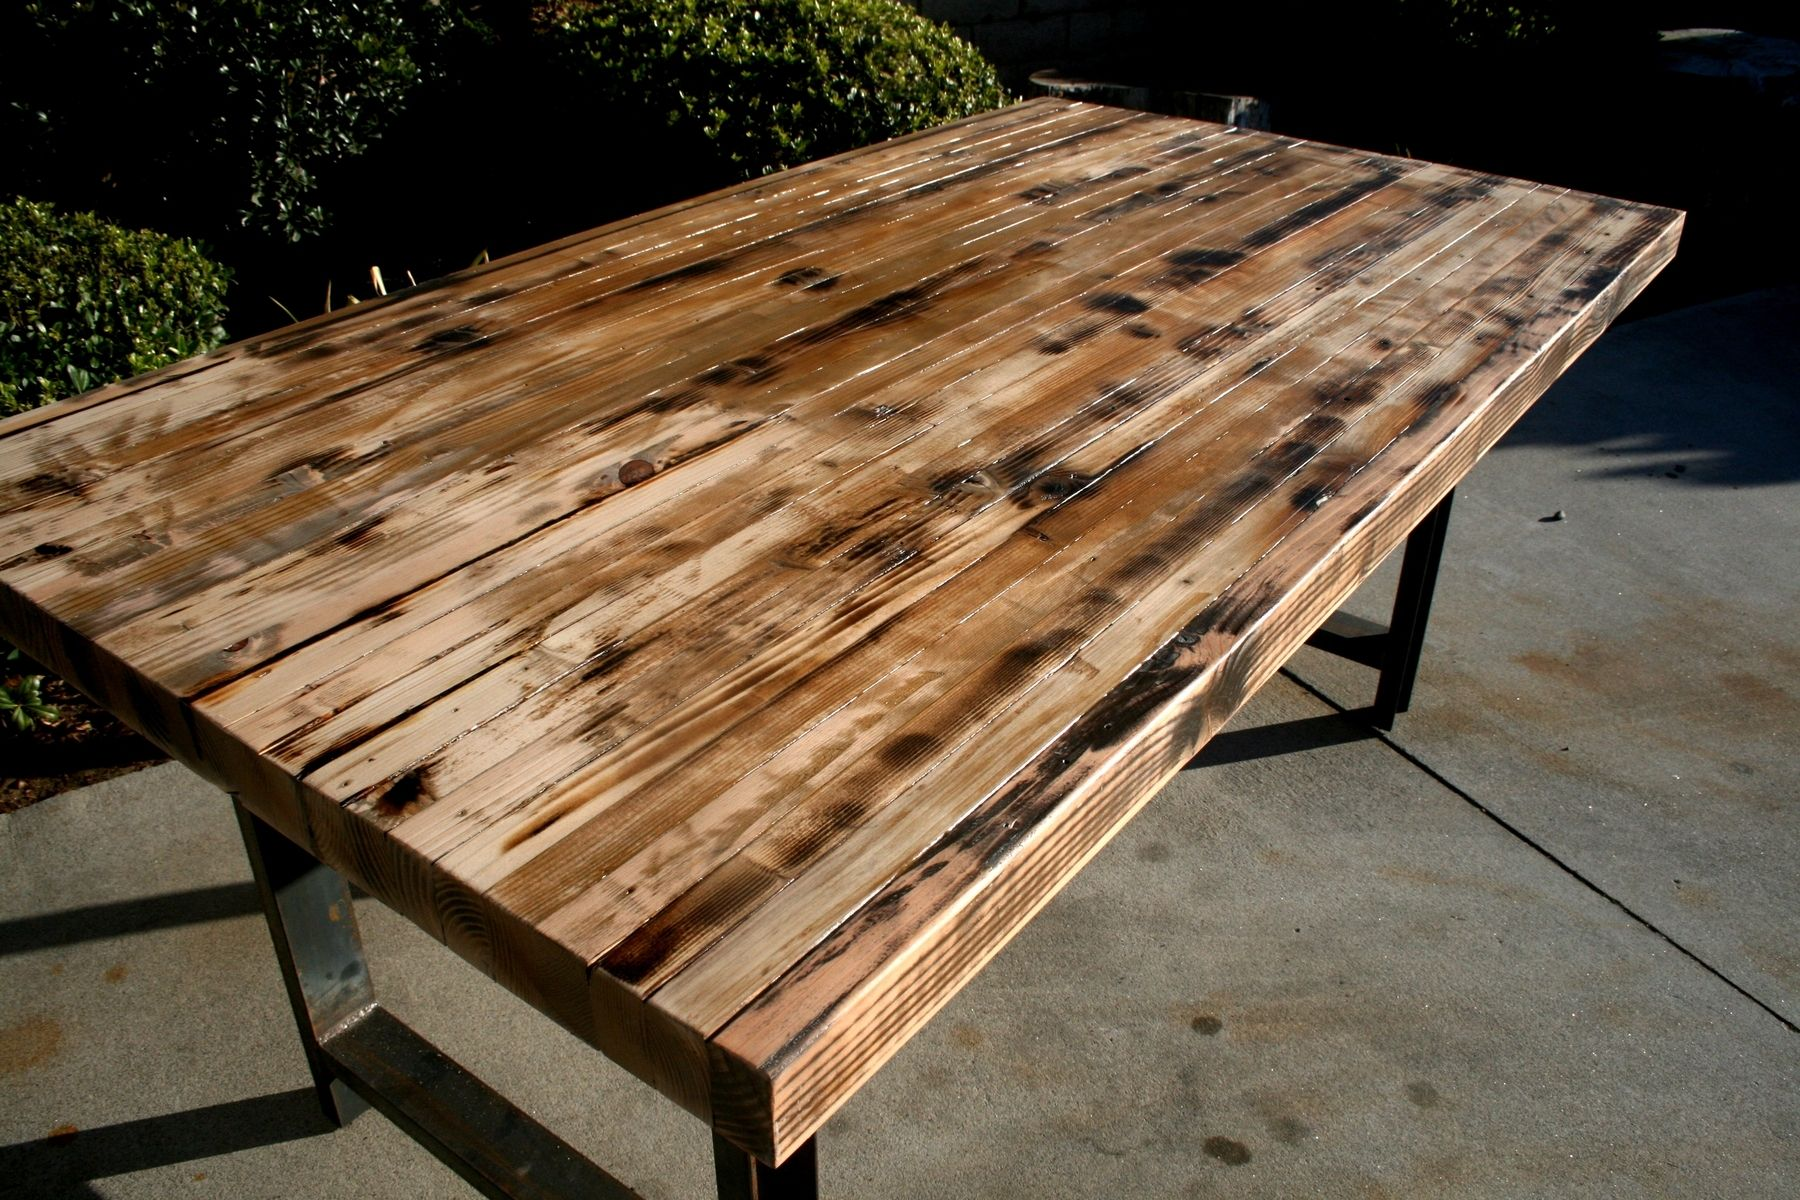 Hand Made Rustic Recycled Butcher Block Dinning Table by  : 82630493366 from www.custommade.com size 1800 x 1200 jpeg 403kB